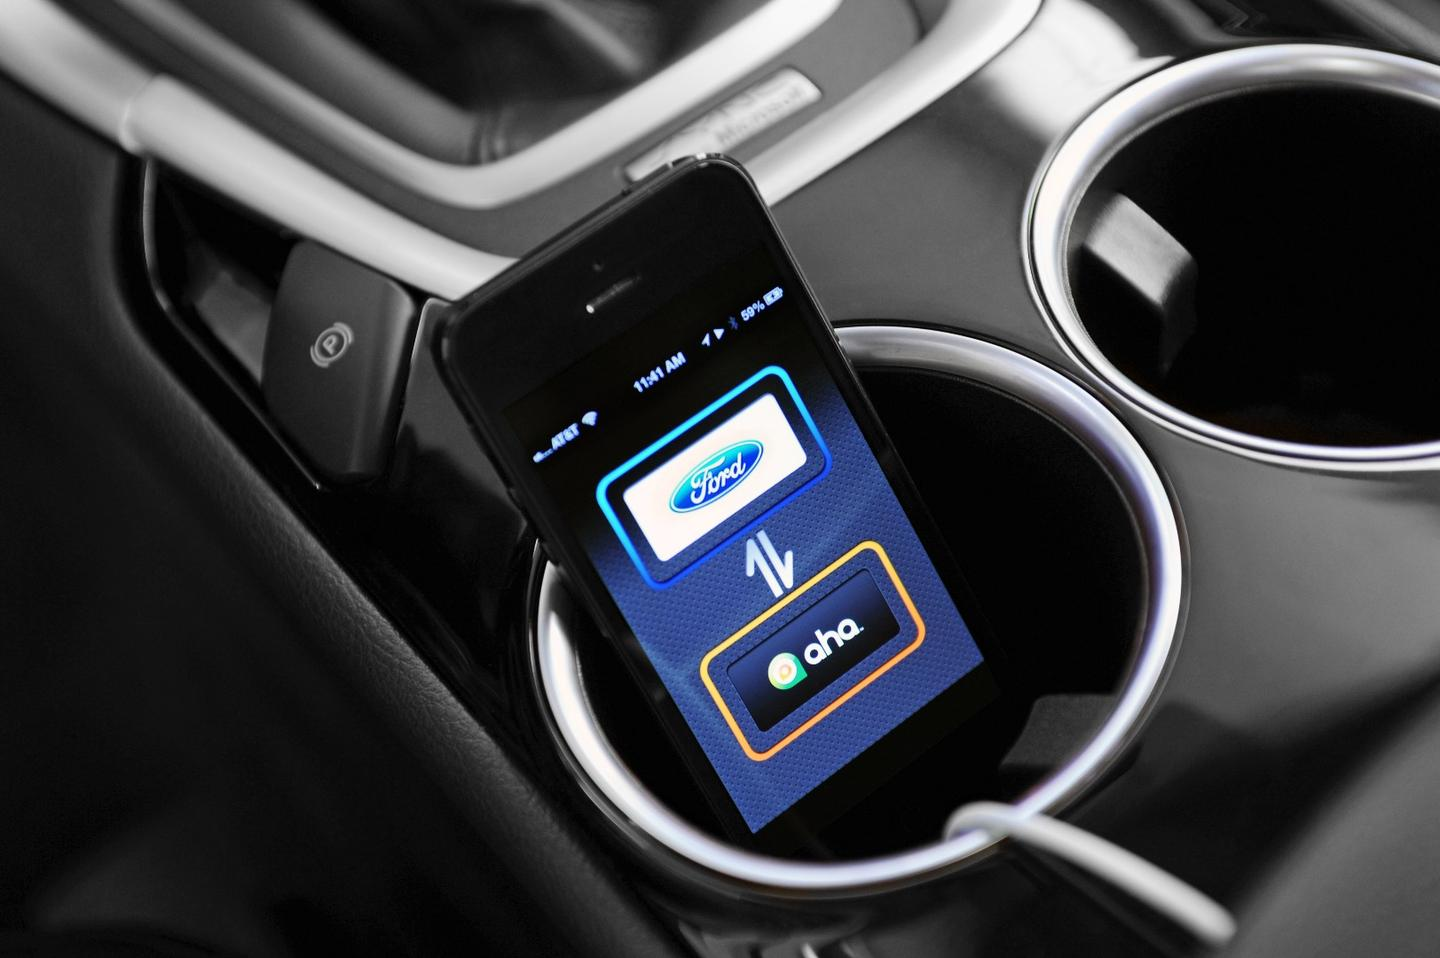 Meople.Connector makes use of Ford's SYNC AppLink, which allows users to control apps on their smartphone using voice activation